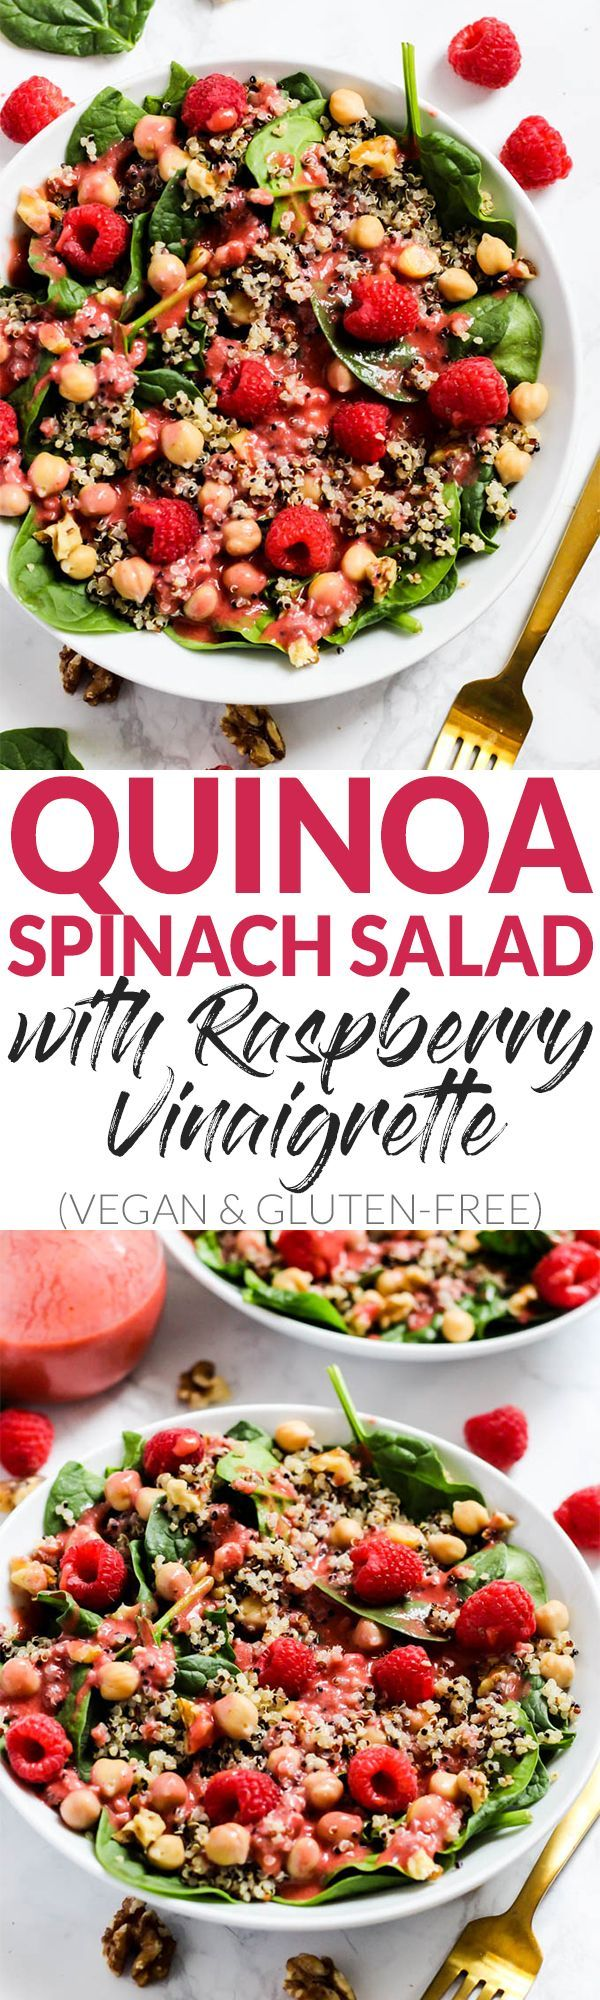 Enjoy the fresh flavors of the season with this fruity Quinoa Spinach Salad with Raspberry Vinaigrette! Serve it as a side or a meal. Vegan & gluten-free! In partnership with @Pompeian. #ad